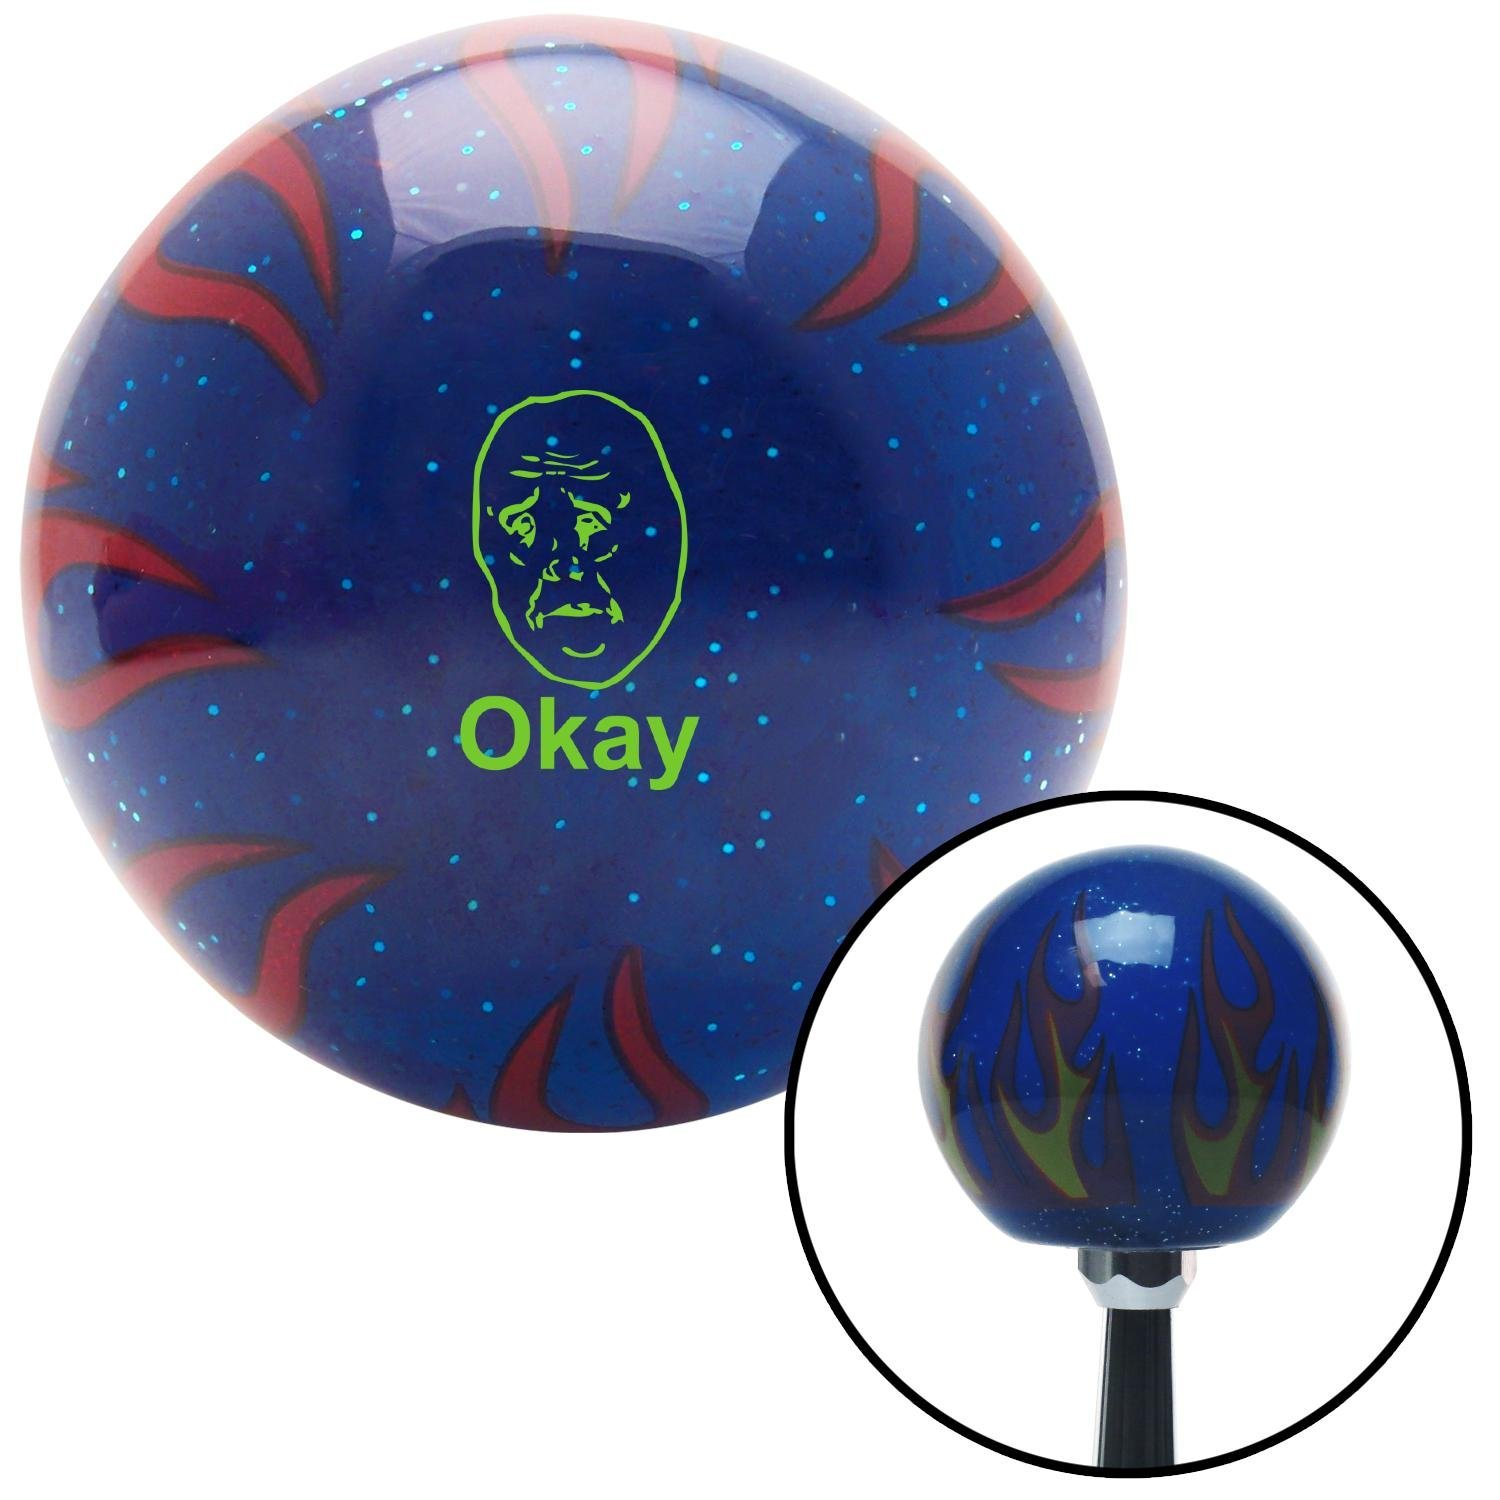 American Shifter 297797 Shift Knob Green Okay Blue Flame Metal Flake with M16 x 1.5 Insert